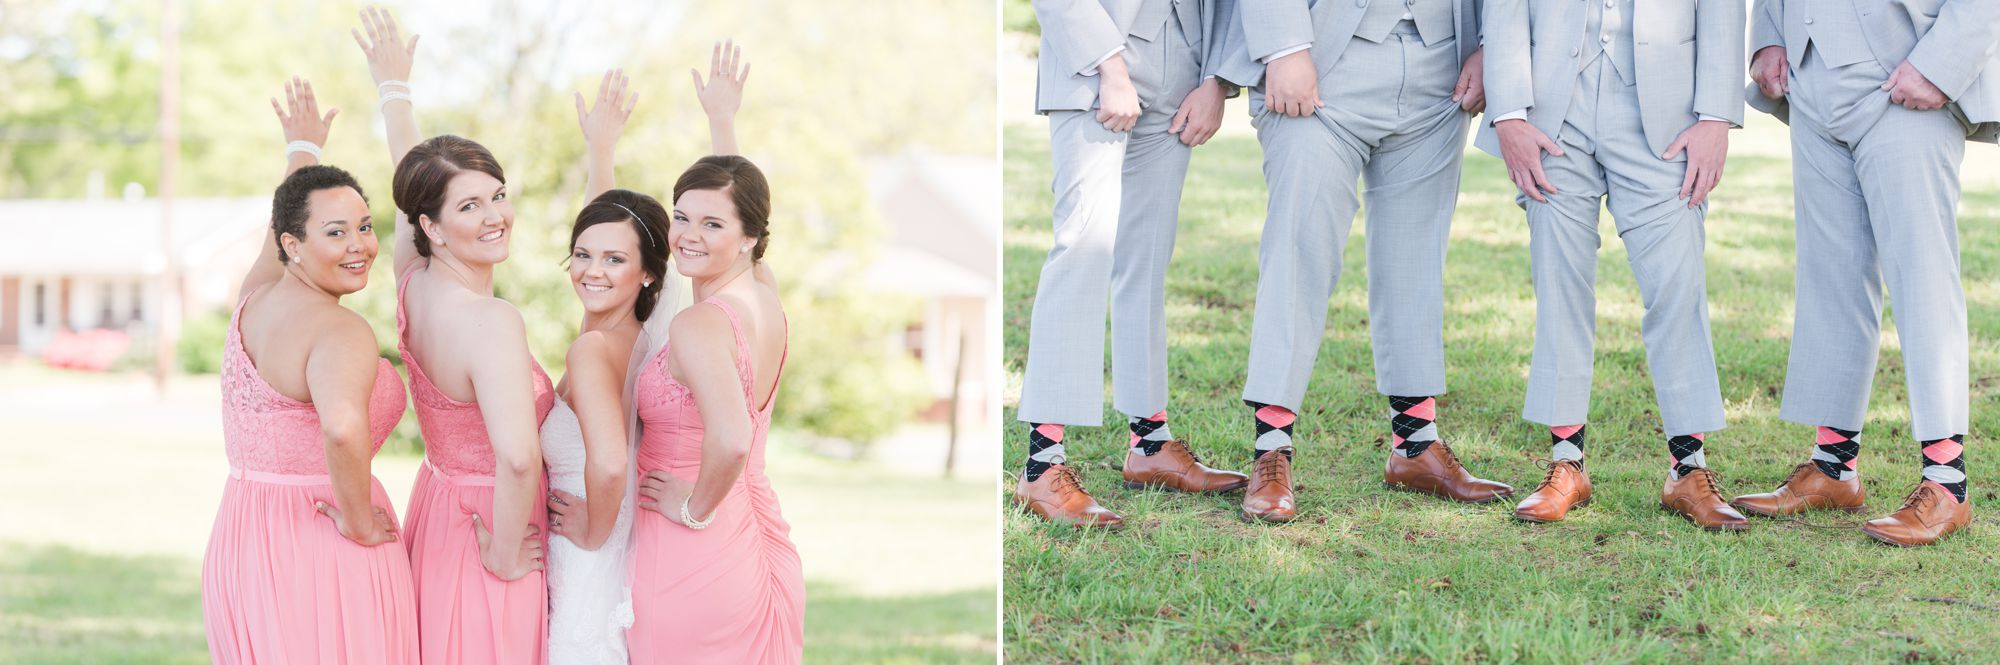 concord-nc-wedding-images 24